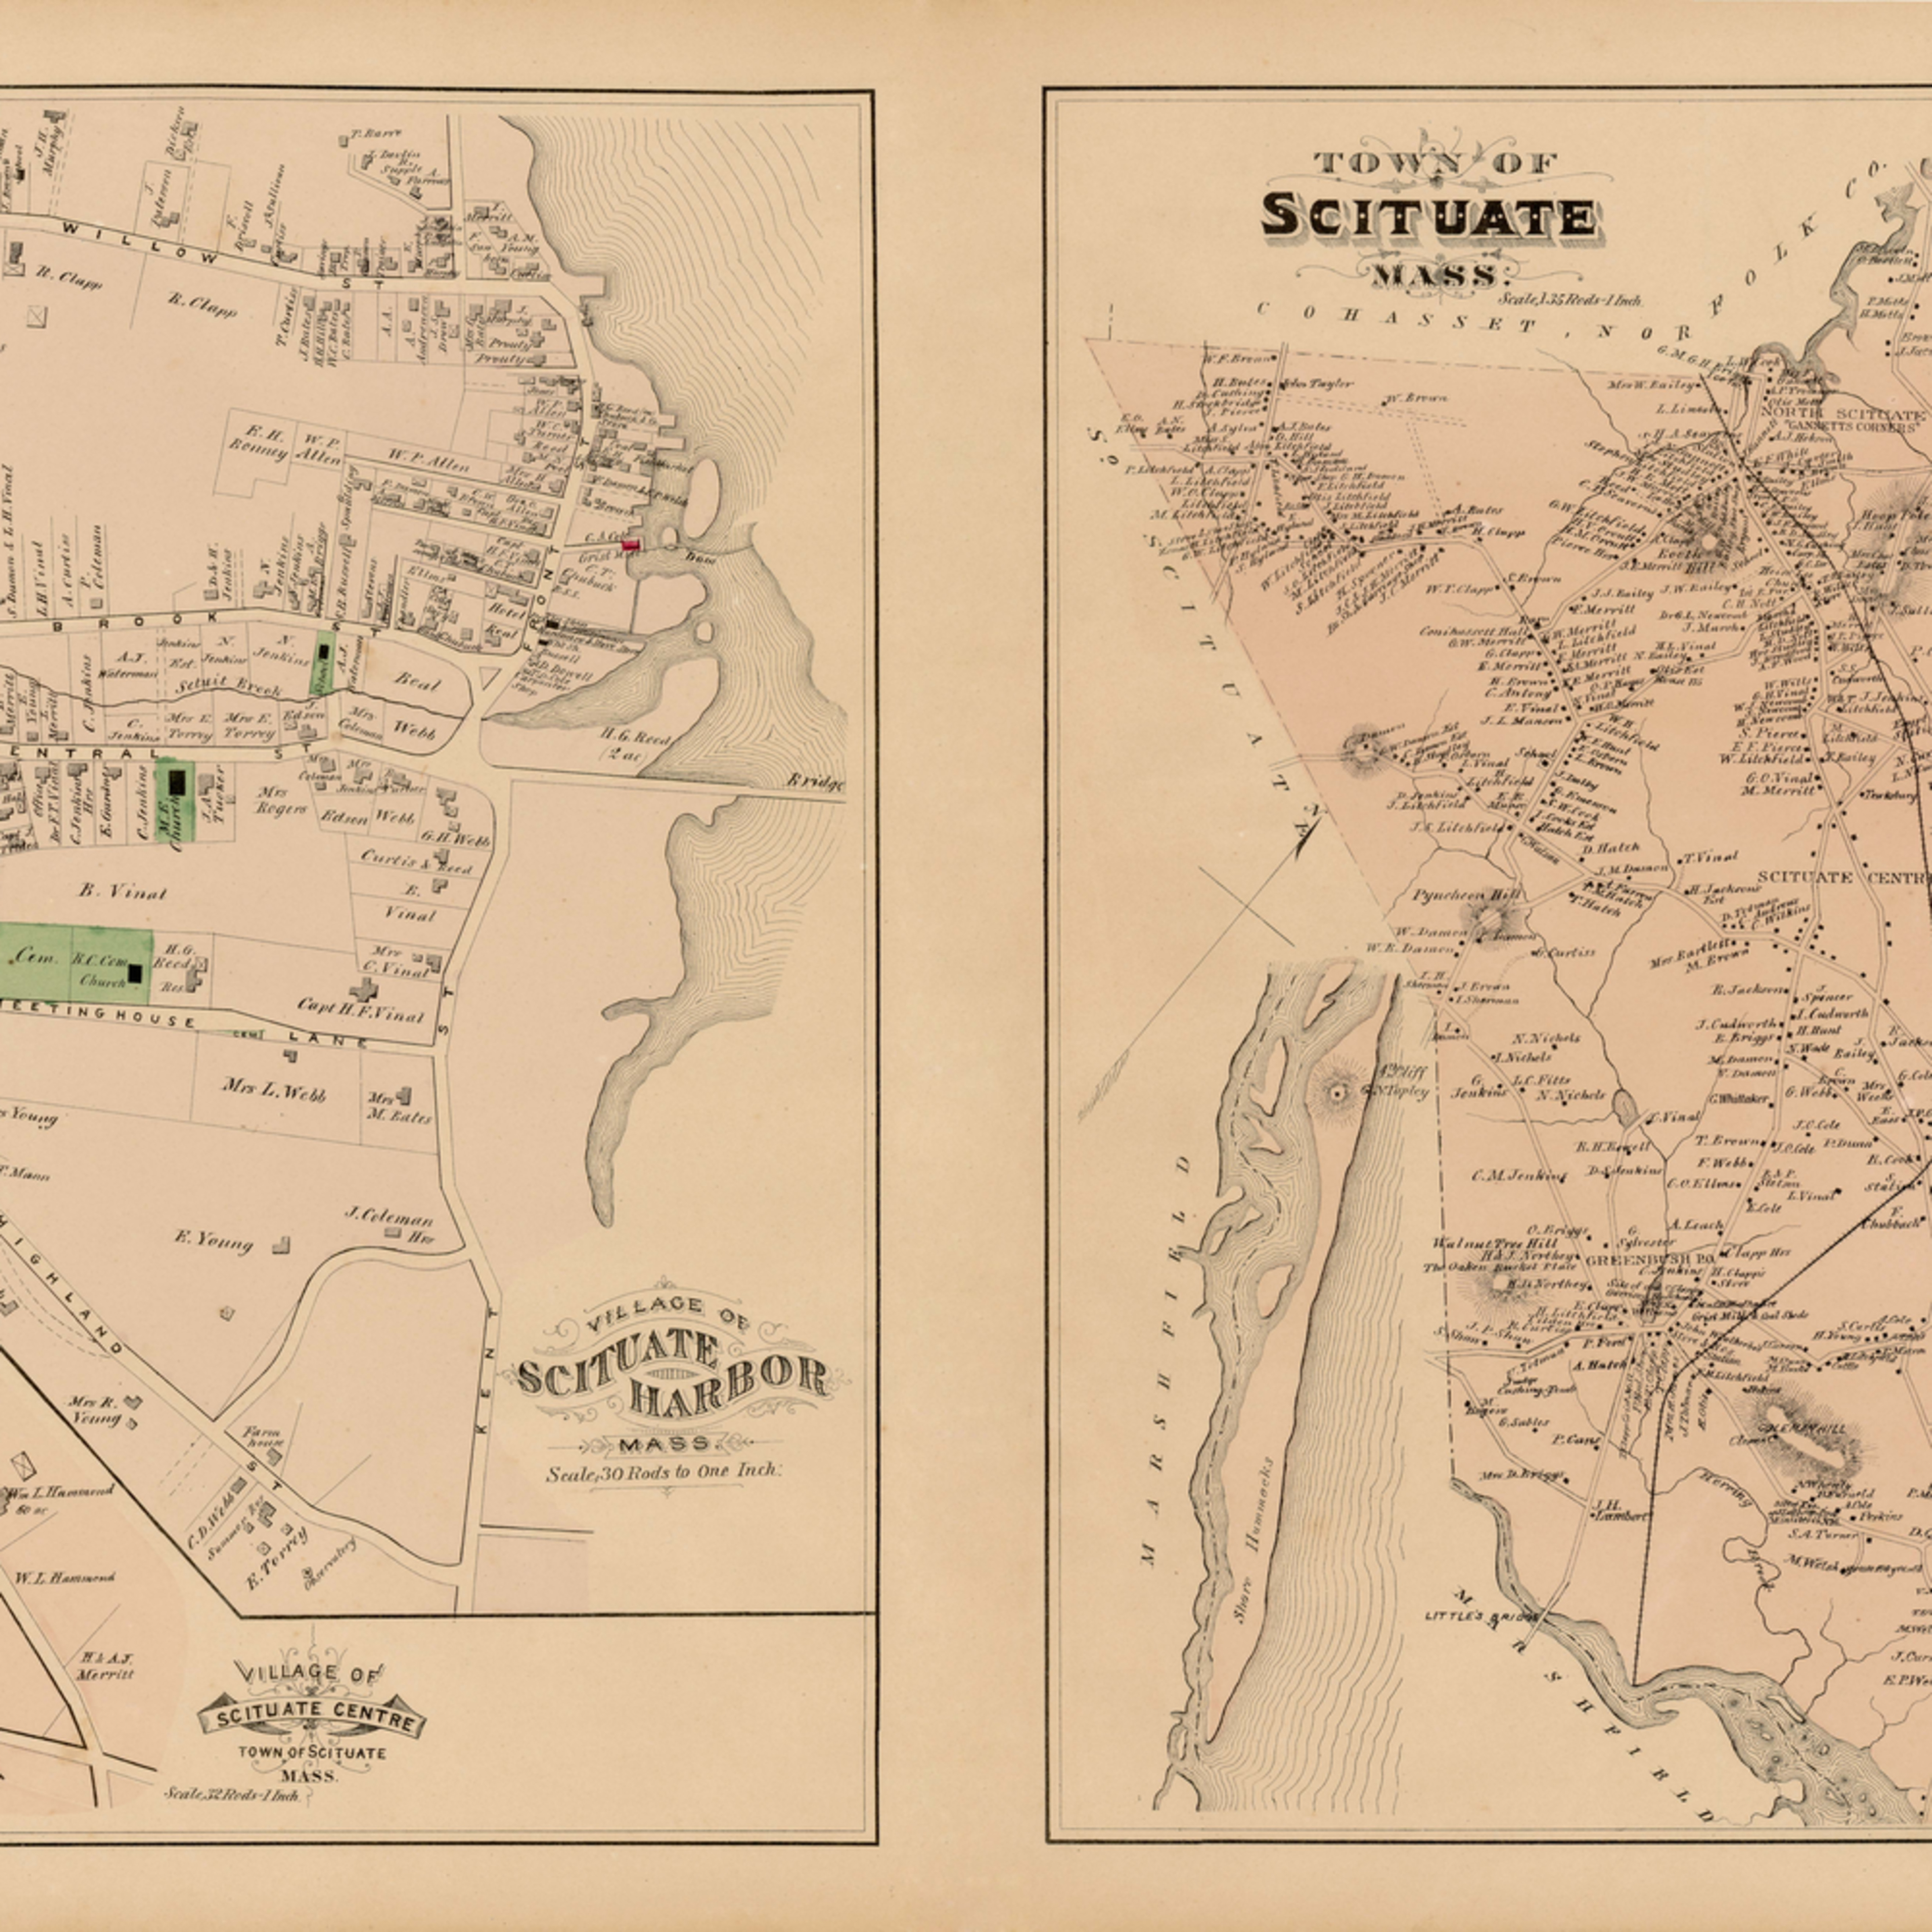 061 p79 scituate town scituate harbor village1879plate33 36 17.5x28 32 dnr2nz